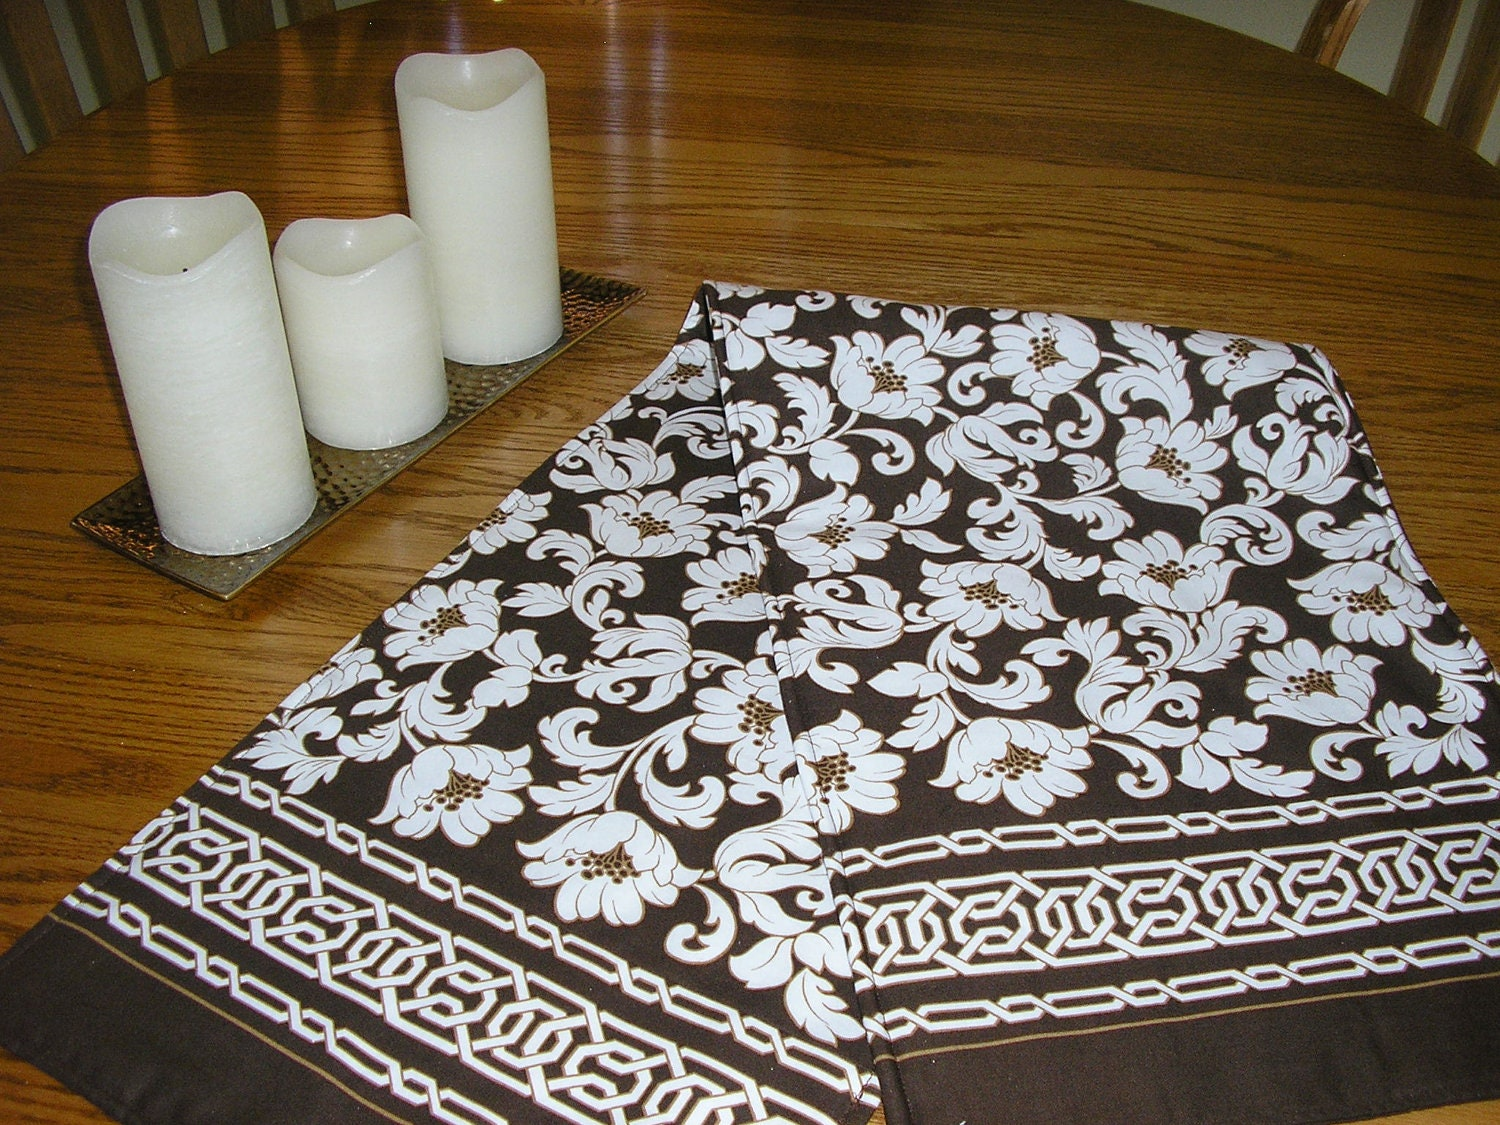 Table runner brown and white floral runner 12 x 42 inches for 10 minute table runner with batting